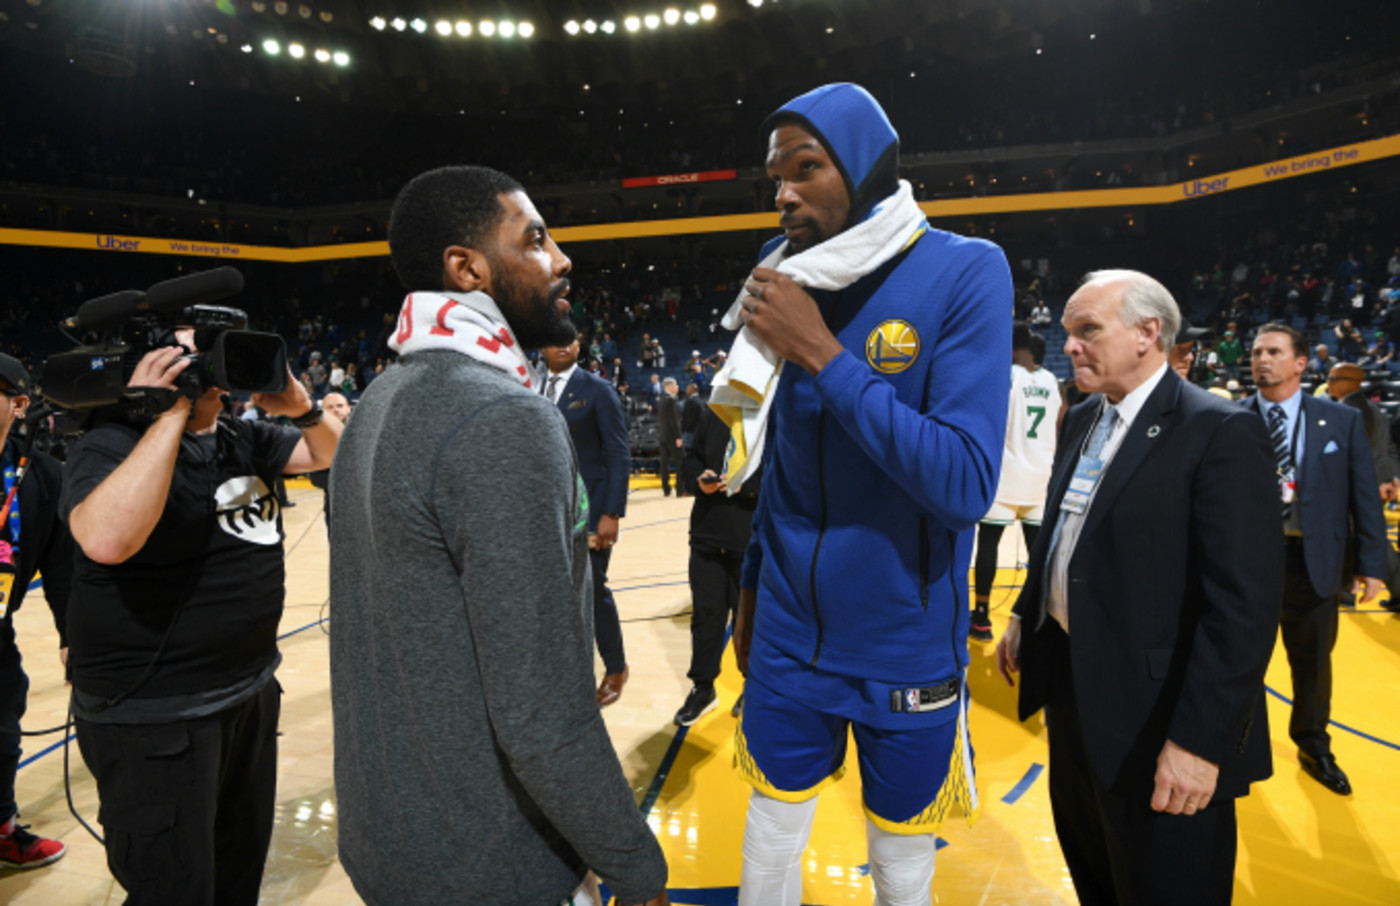 Kyrie Irving #11 of the Boston Celtics speaks with Kevin Durant #35 of the Golden State Warriors